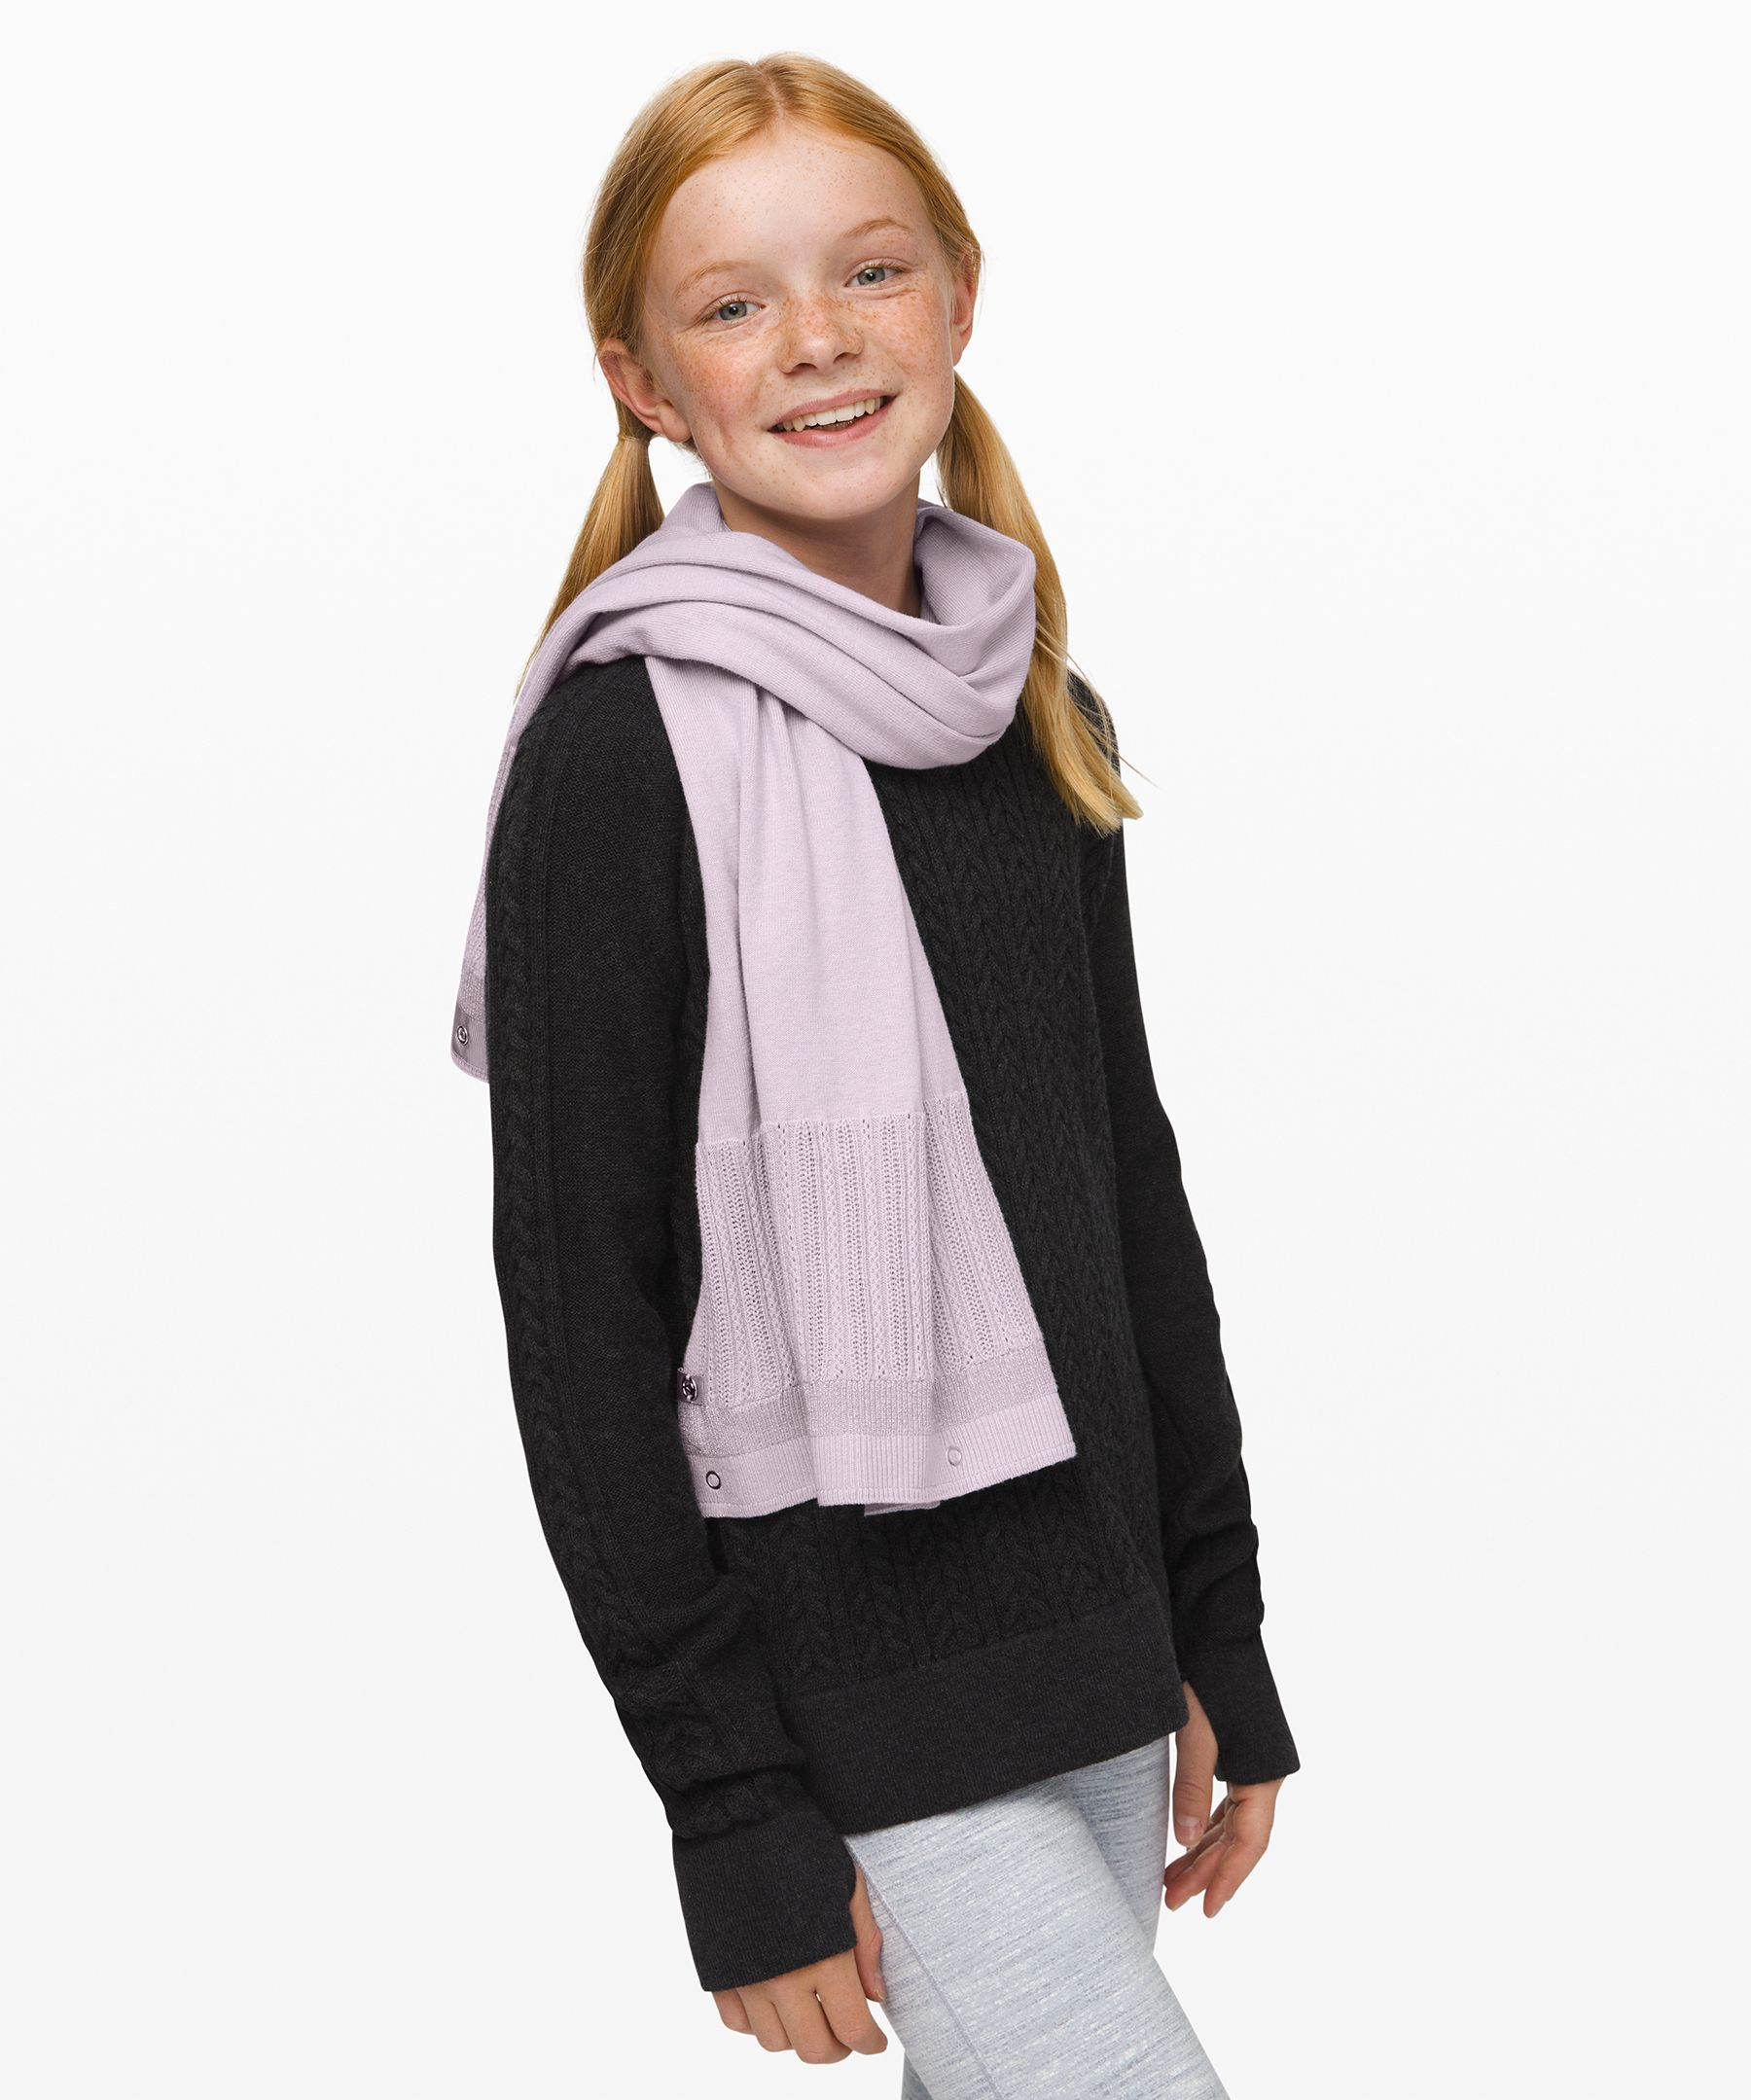 She can double-wrap this scarf  to bundle up on chilly days or  unsnap it to style it in her  own unique way.